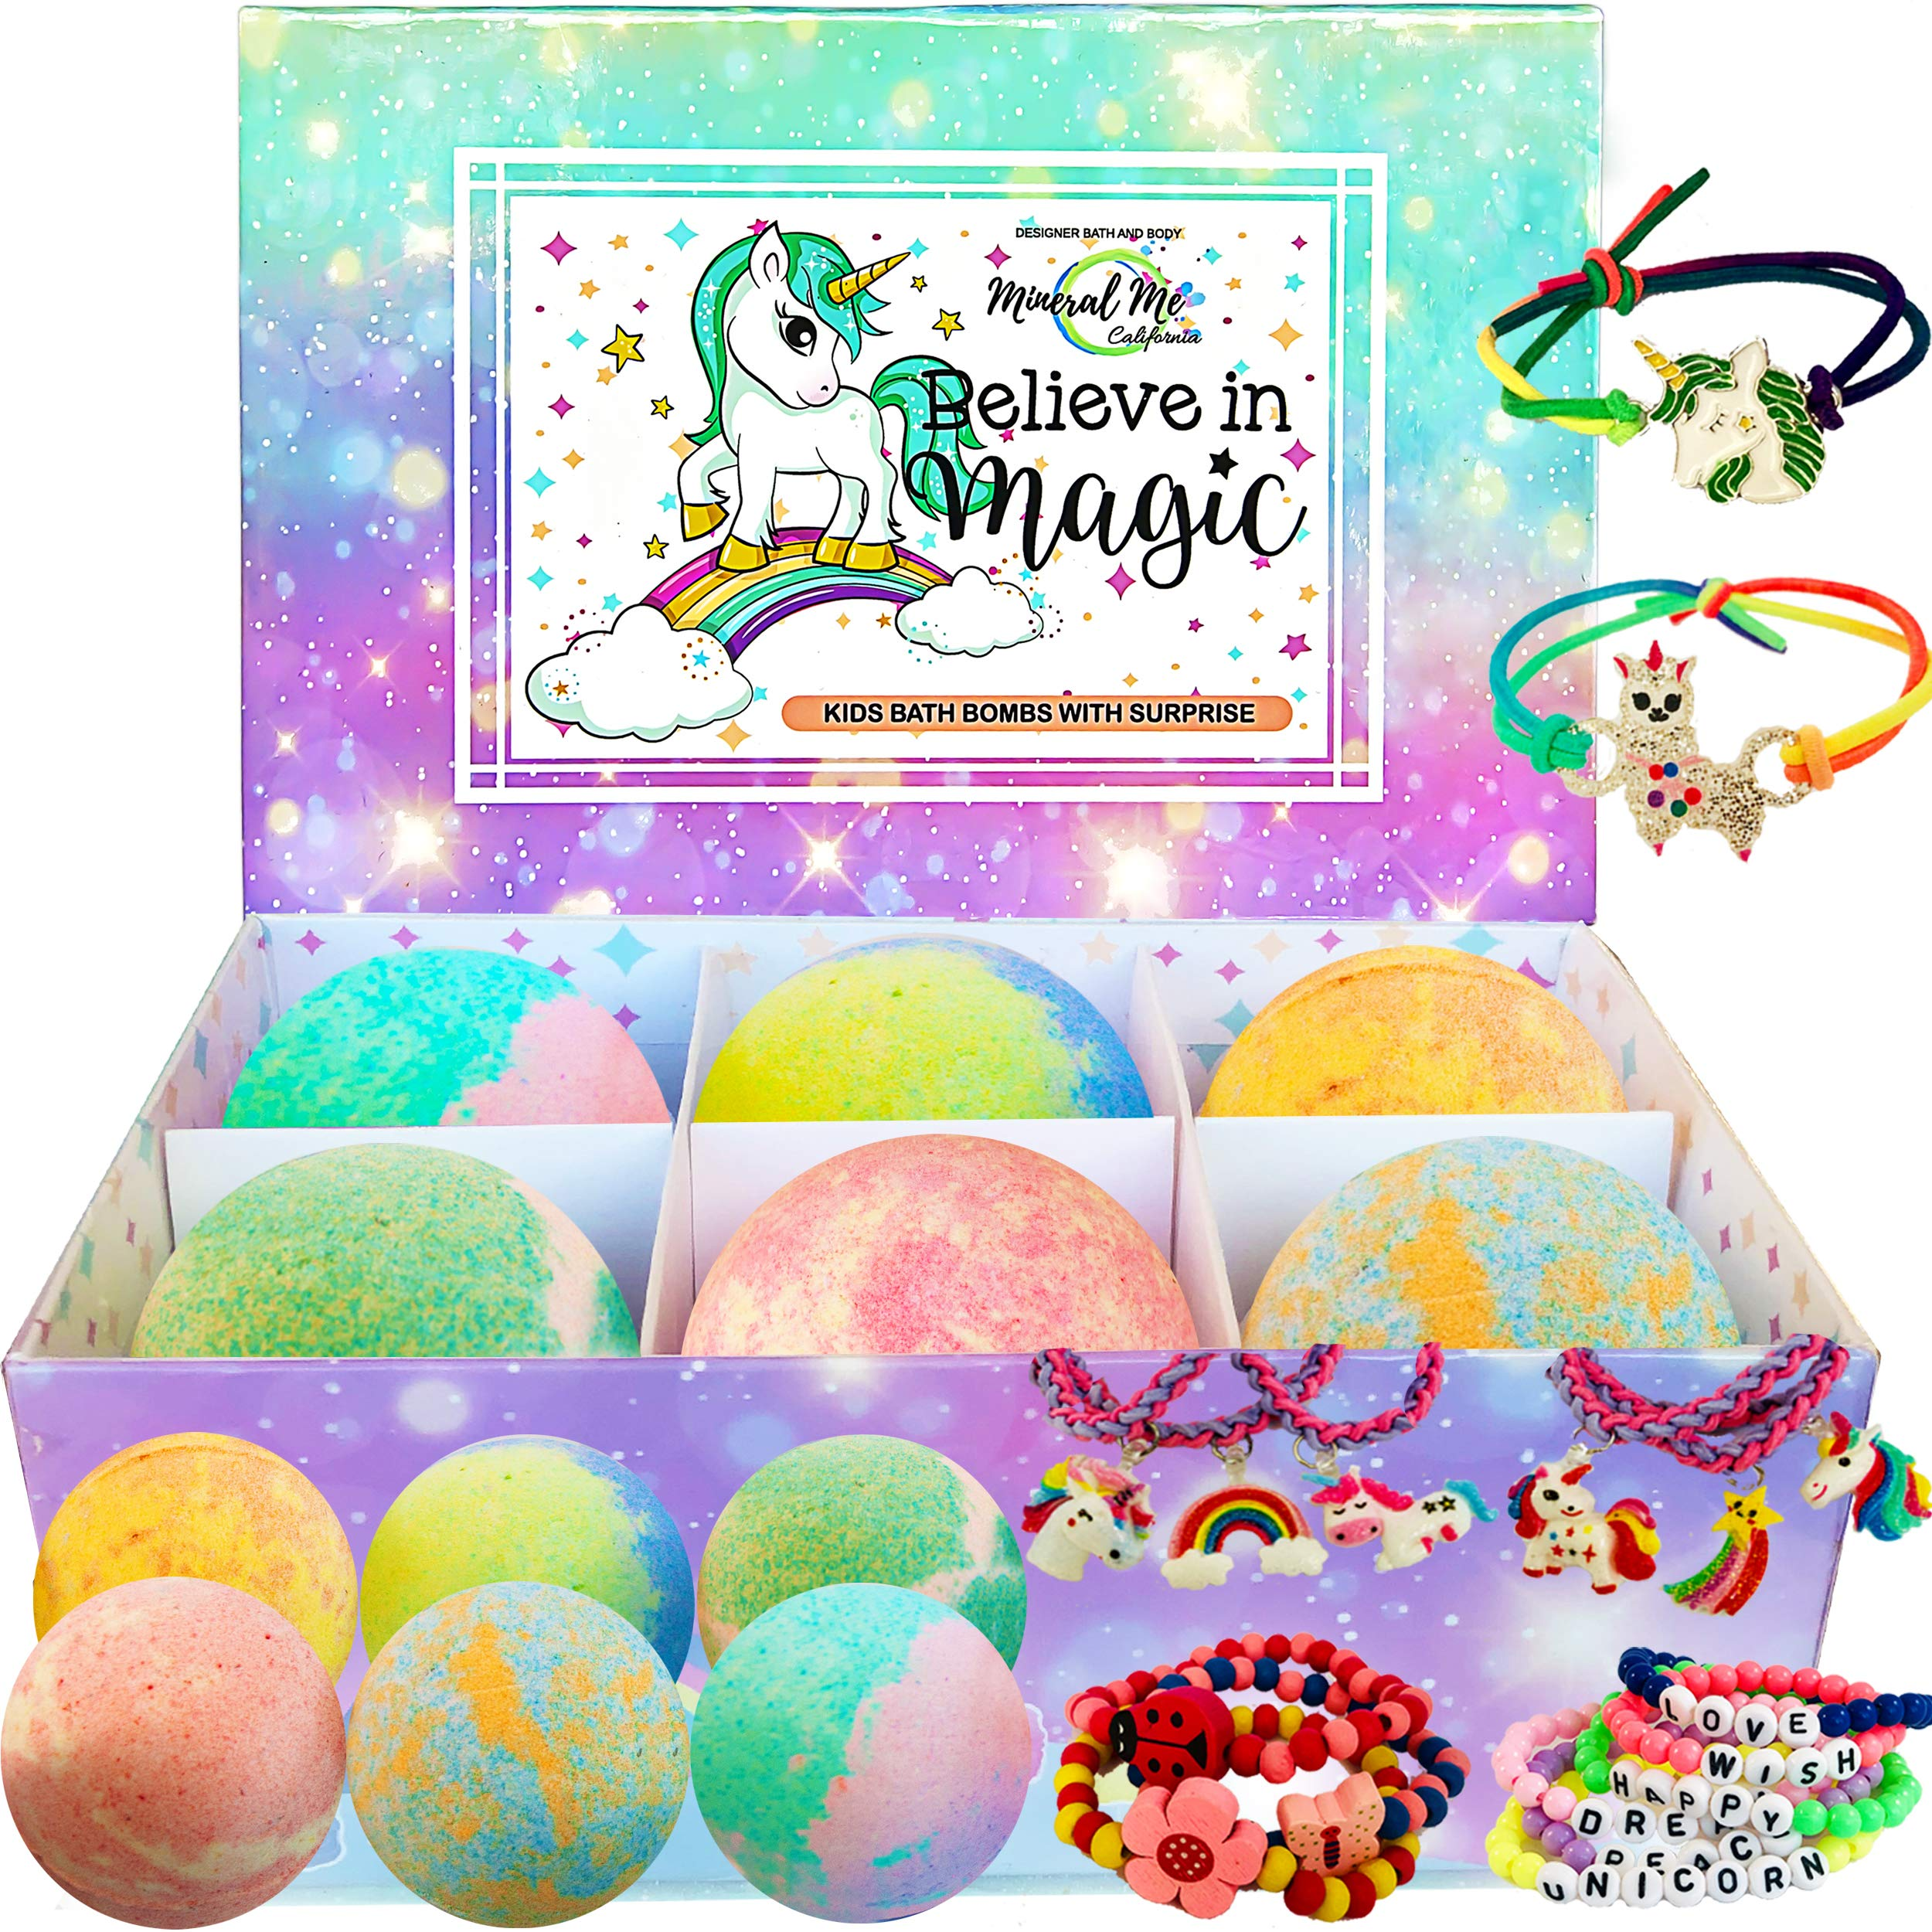 Unicorn Bath Bombs for Girls with Jewelry Inside Plus Jewelry Box for Kids. - All Natural and Organic with Skin moisturizing Shea Butter. Gentle and Kid Safe Bubble Bath Fizzies with Surprise Toys.